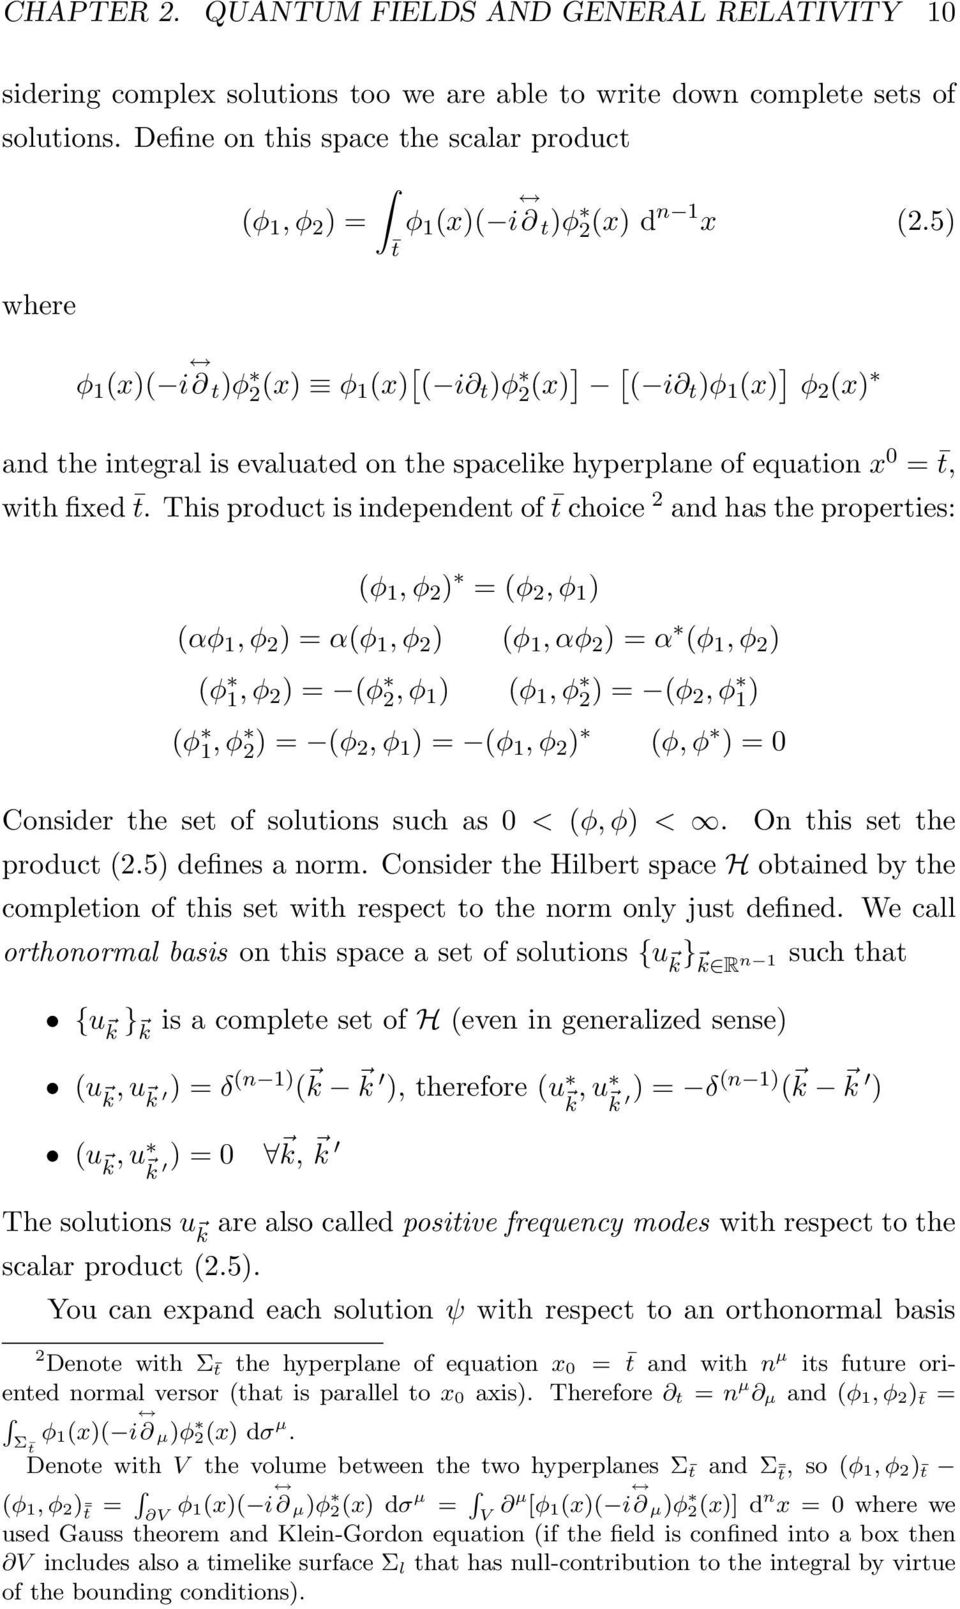 5 t φ 1 x i t φ 2x φ 1 x [ i t φ 2x ] [ i t φ 1 x ] φ 2 x and the integral is evaluated on the spacelike hyperplane of equation x 0 = t, with fixed t.